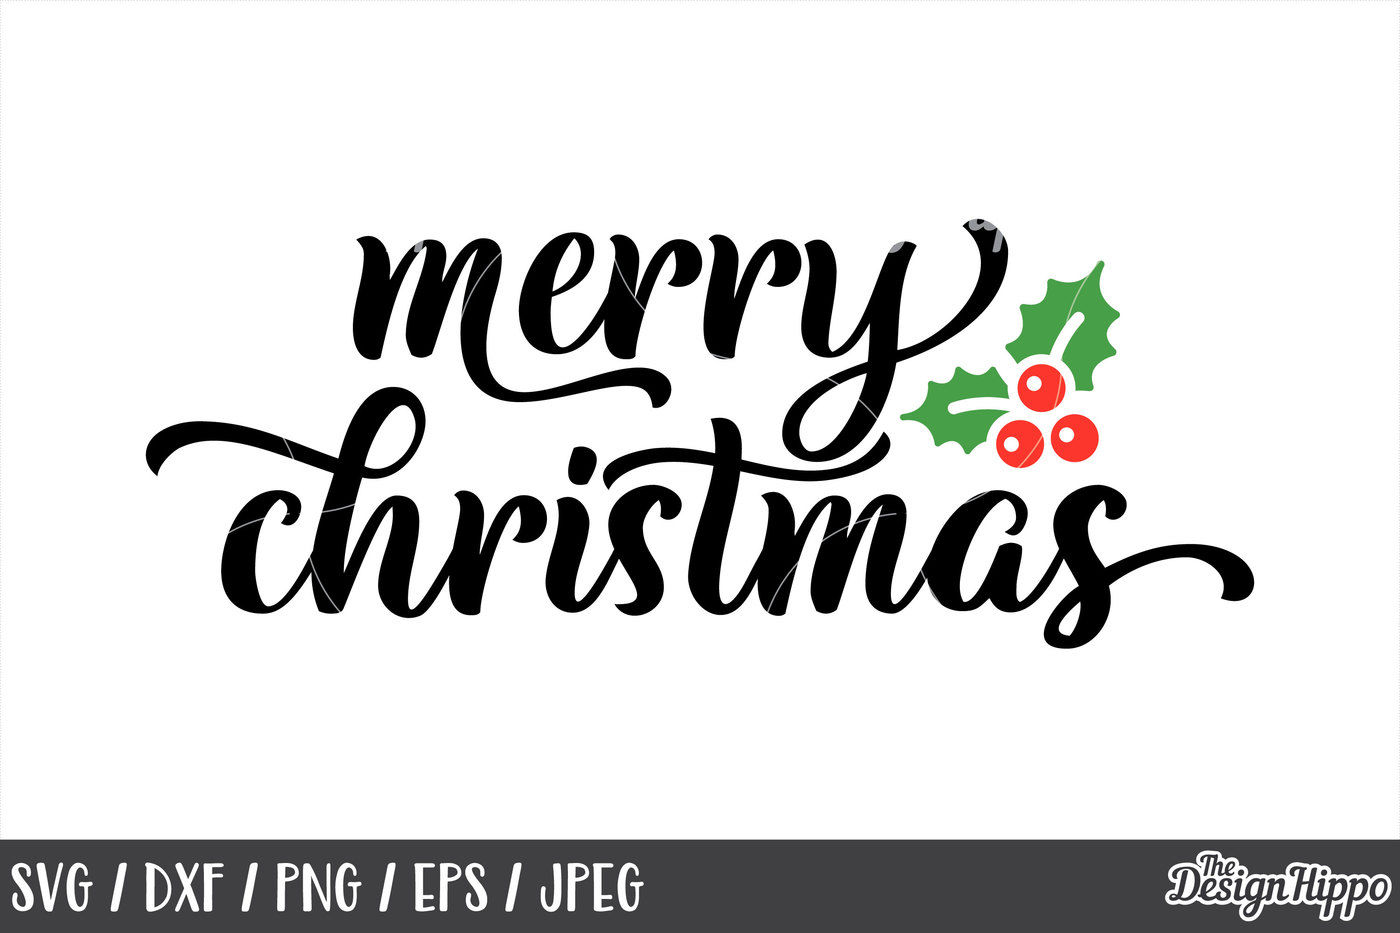 Merry Christmas Jpeg 2020 Merry Christmas SVG Bundle, Christmas SVG, PNG, DXF, Cricut, Cut